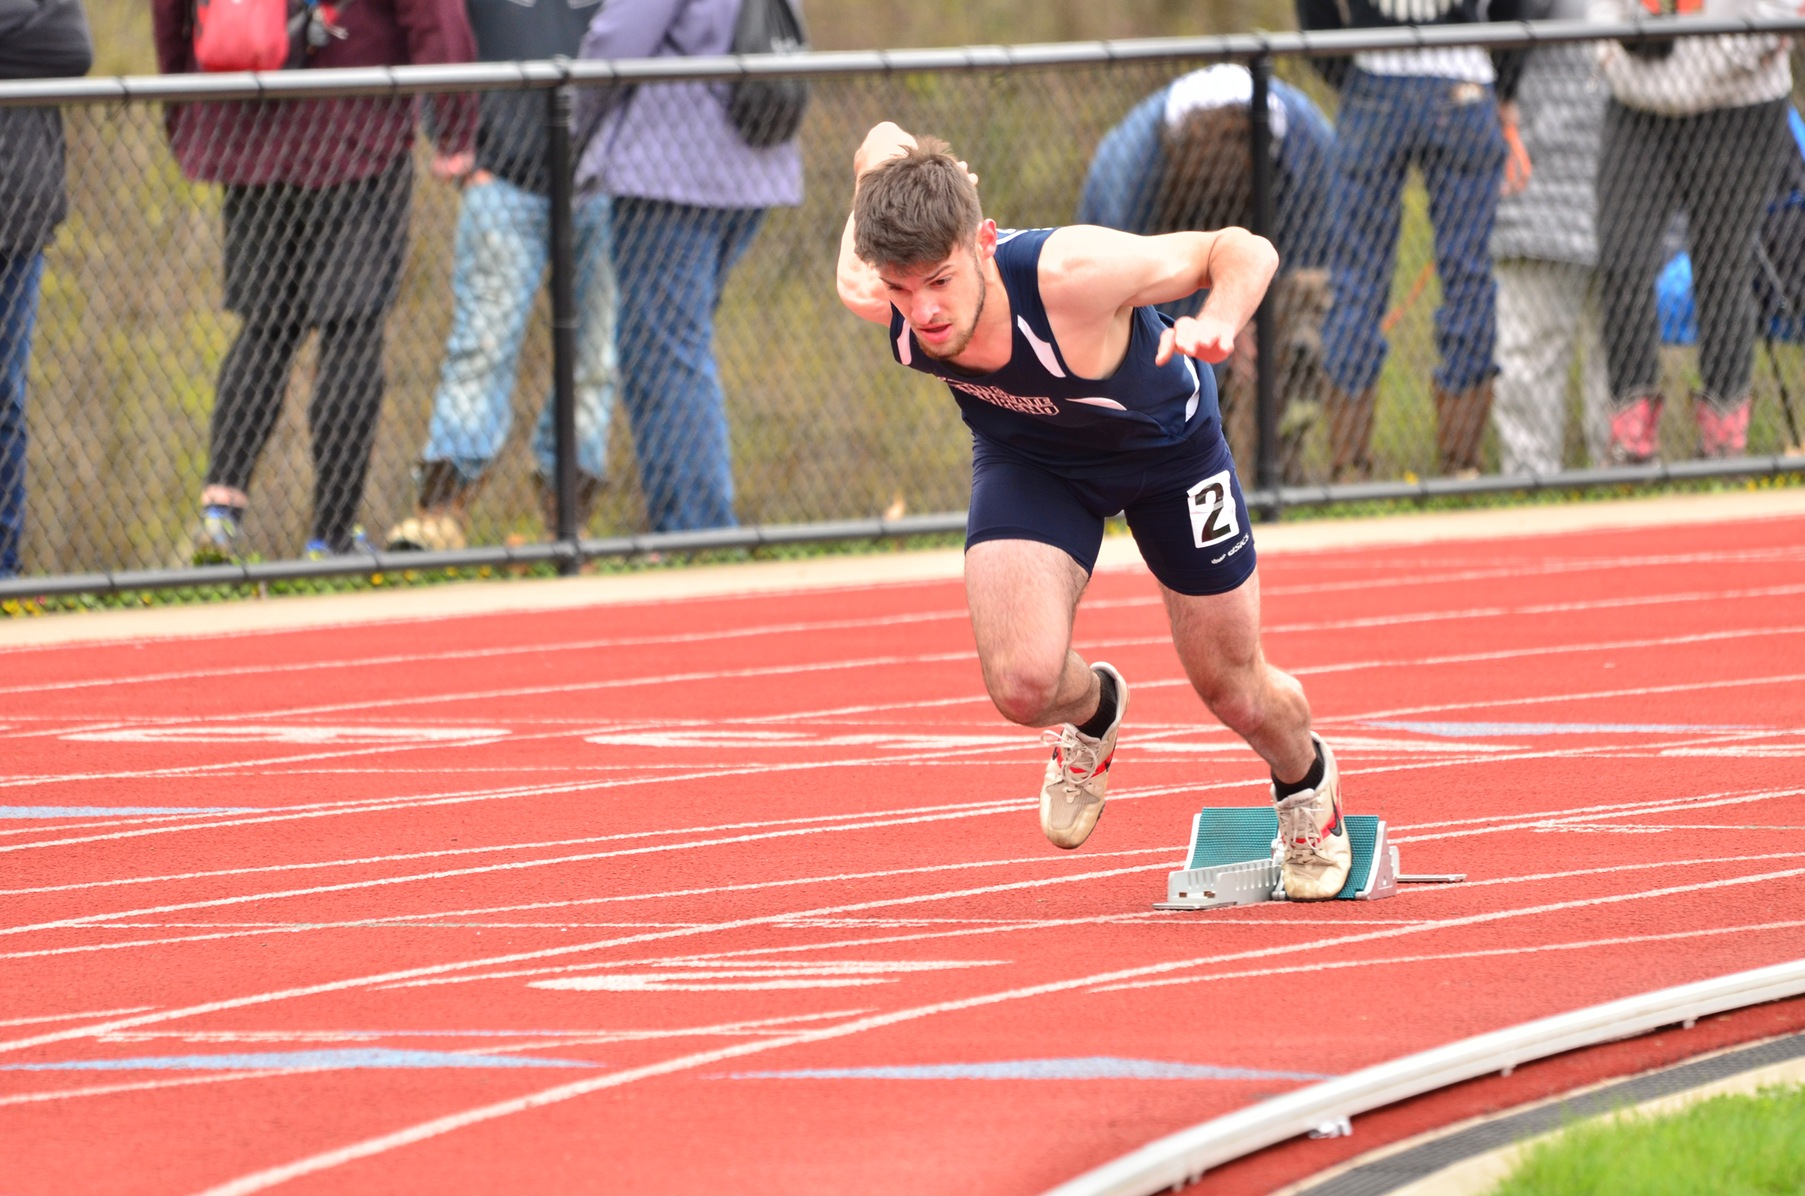 Men's Outoor Track & Field in Fourth Place at ECAC Championships